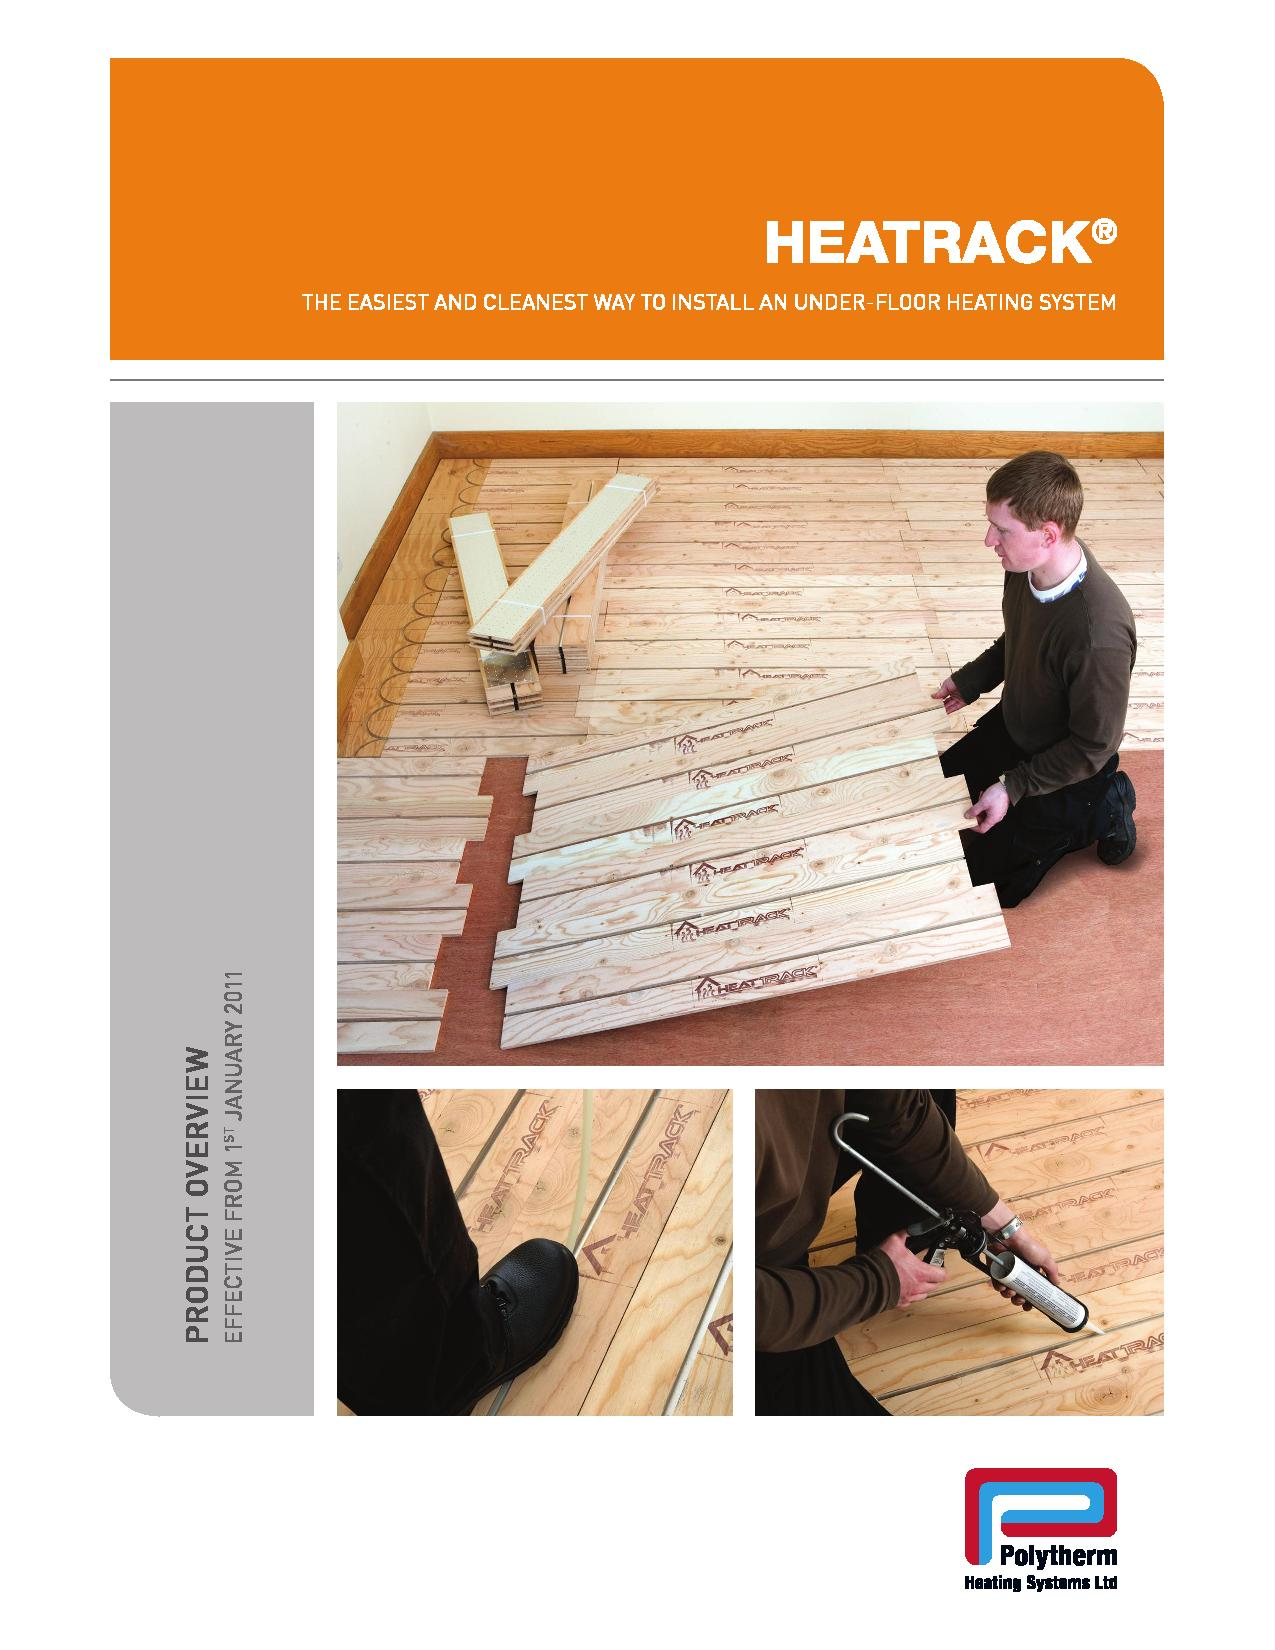 Heatrack Brochure